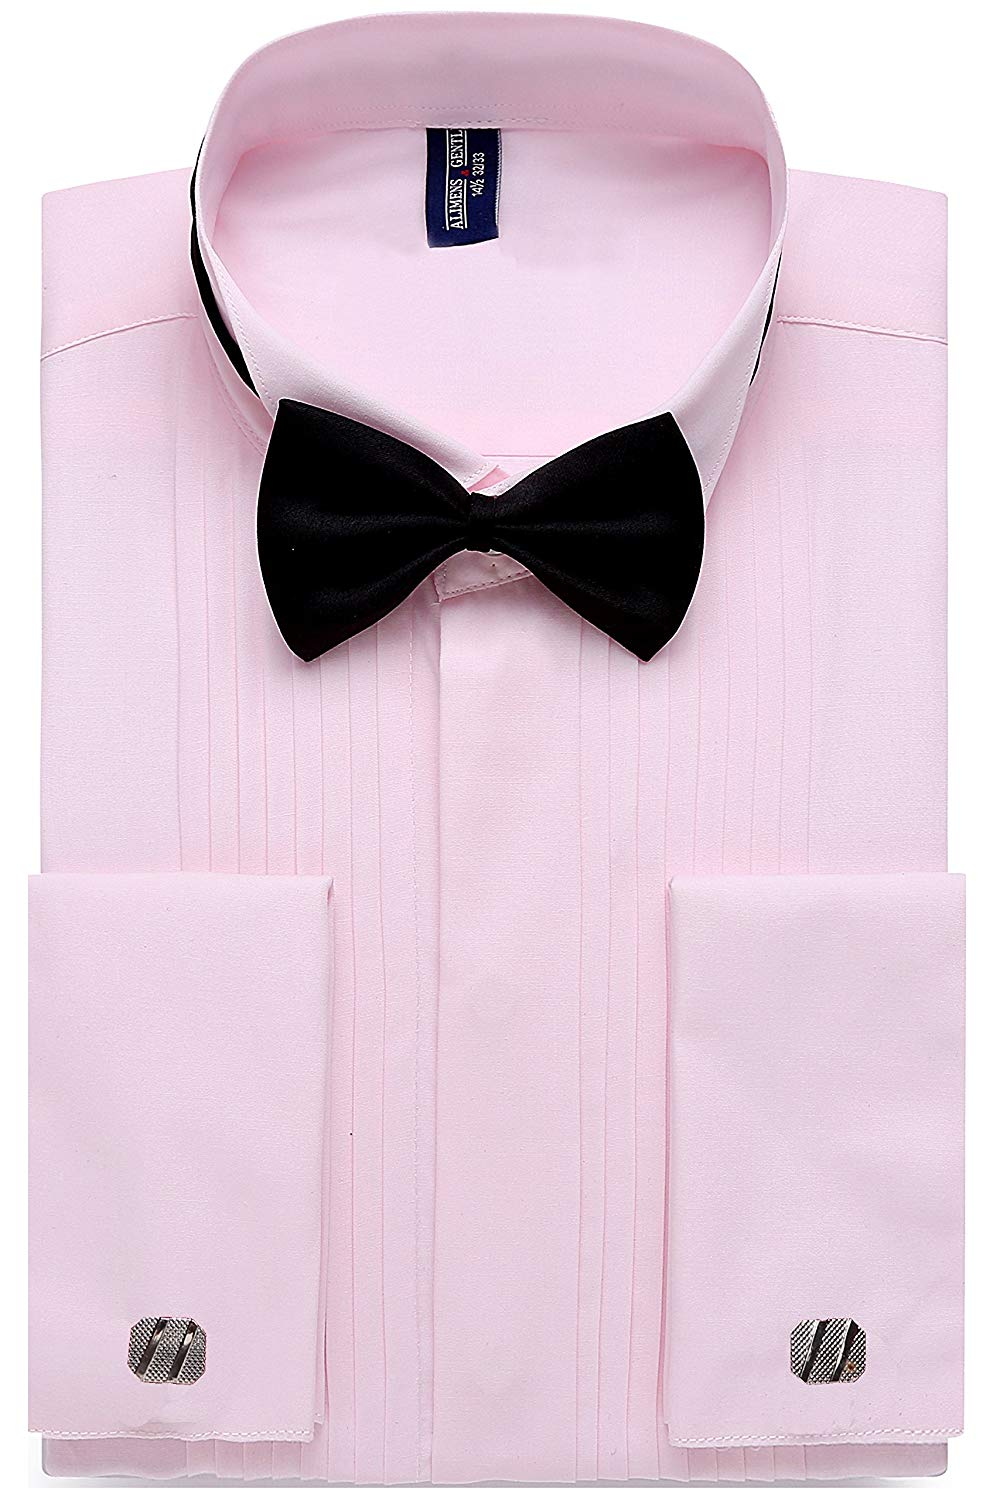 Shirtsformato45gentle Mens French Cuff Wing Collar Tuxedo Shirts